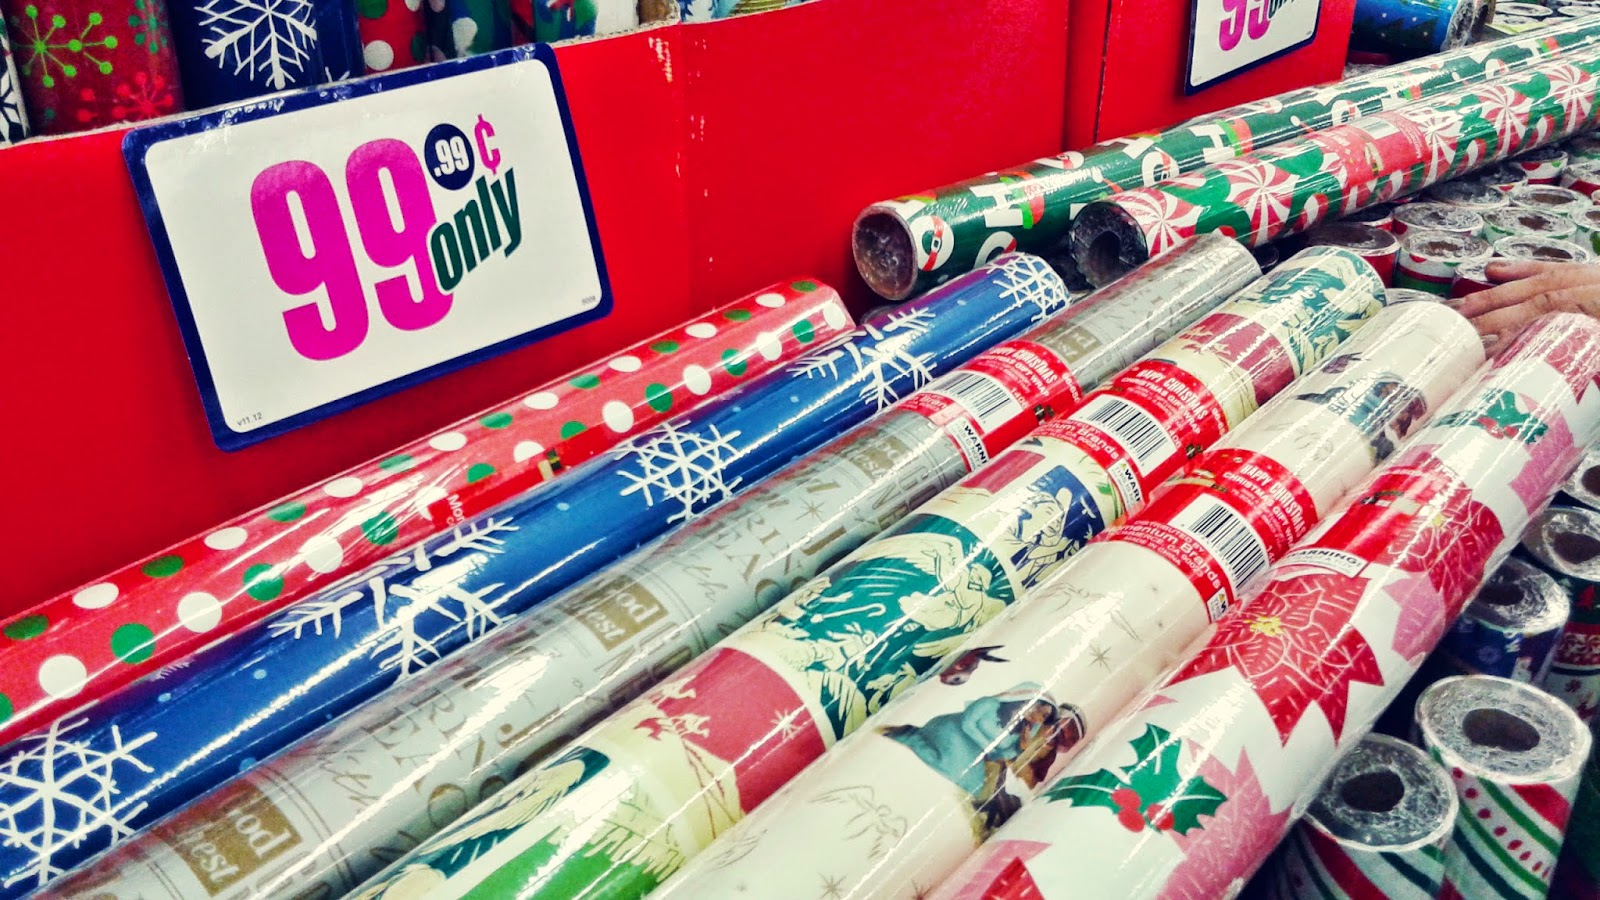 christmas wrapping paper designs with spiritual themes - 99 Cent Store Christmas Hours